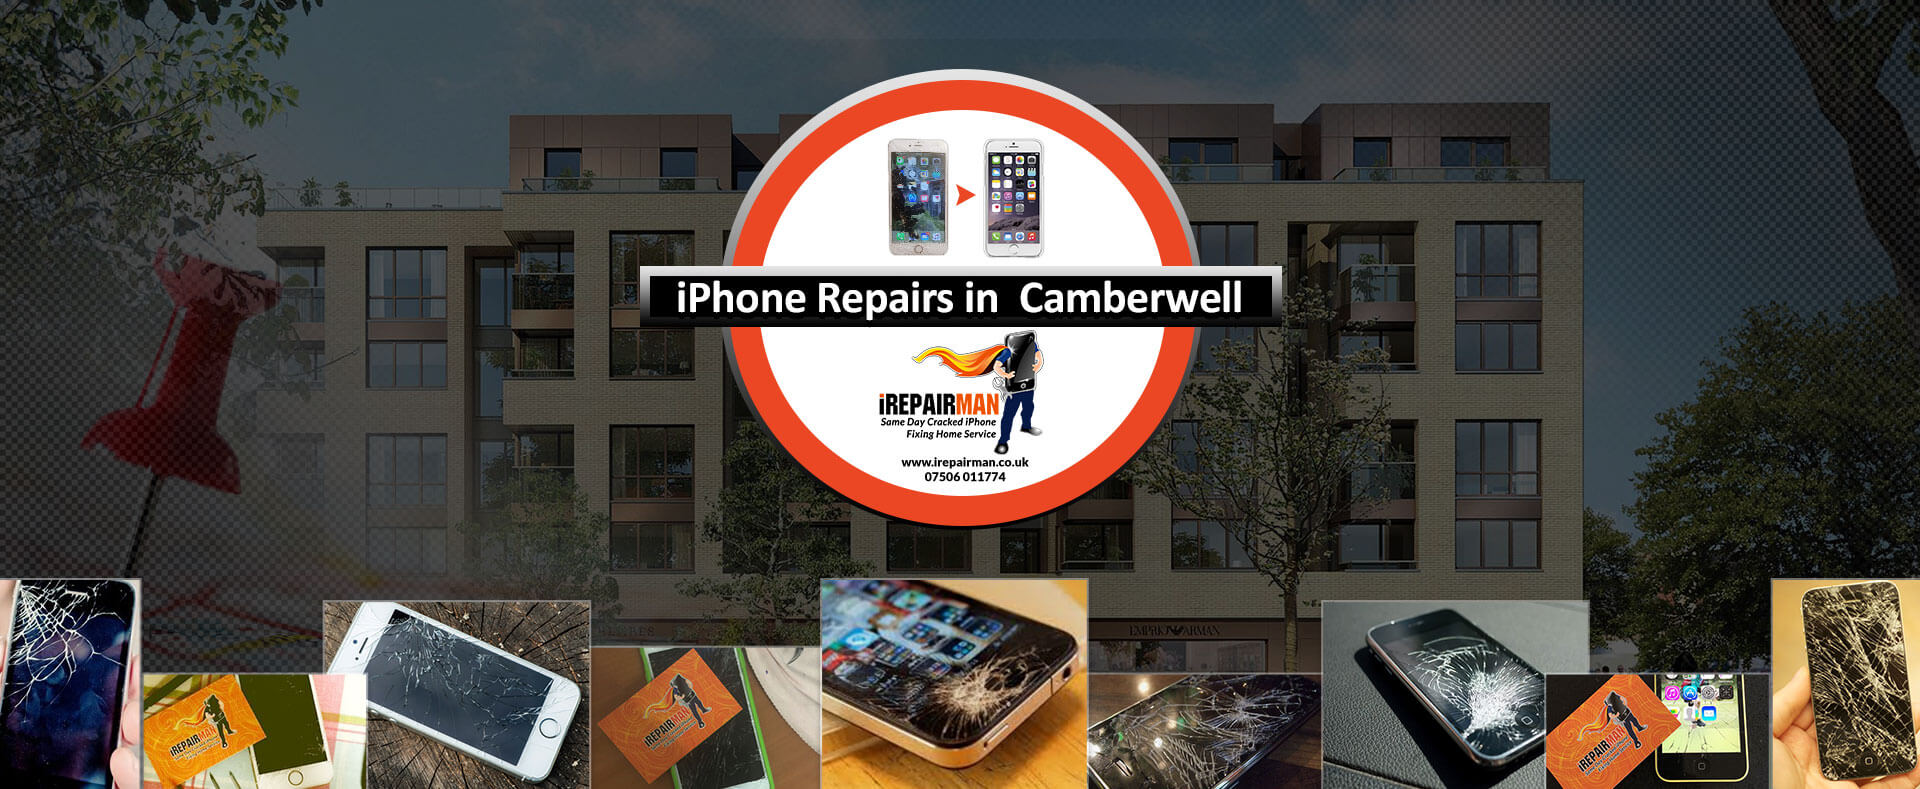 iPhone Repairs in Camberwell